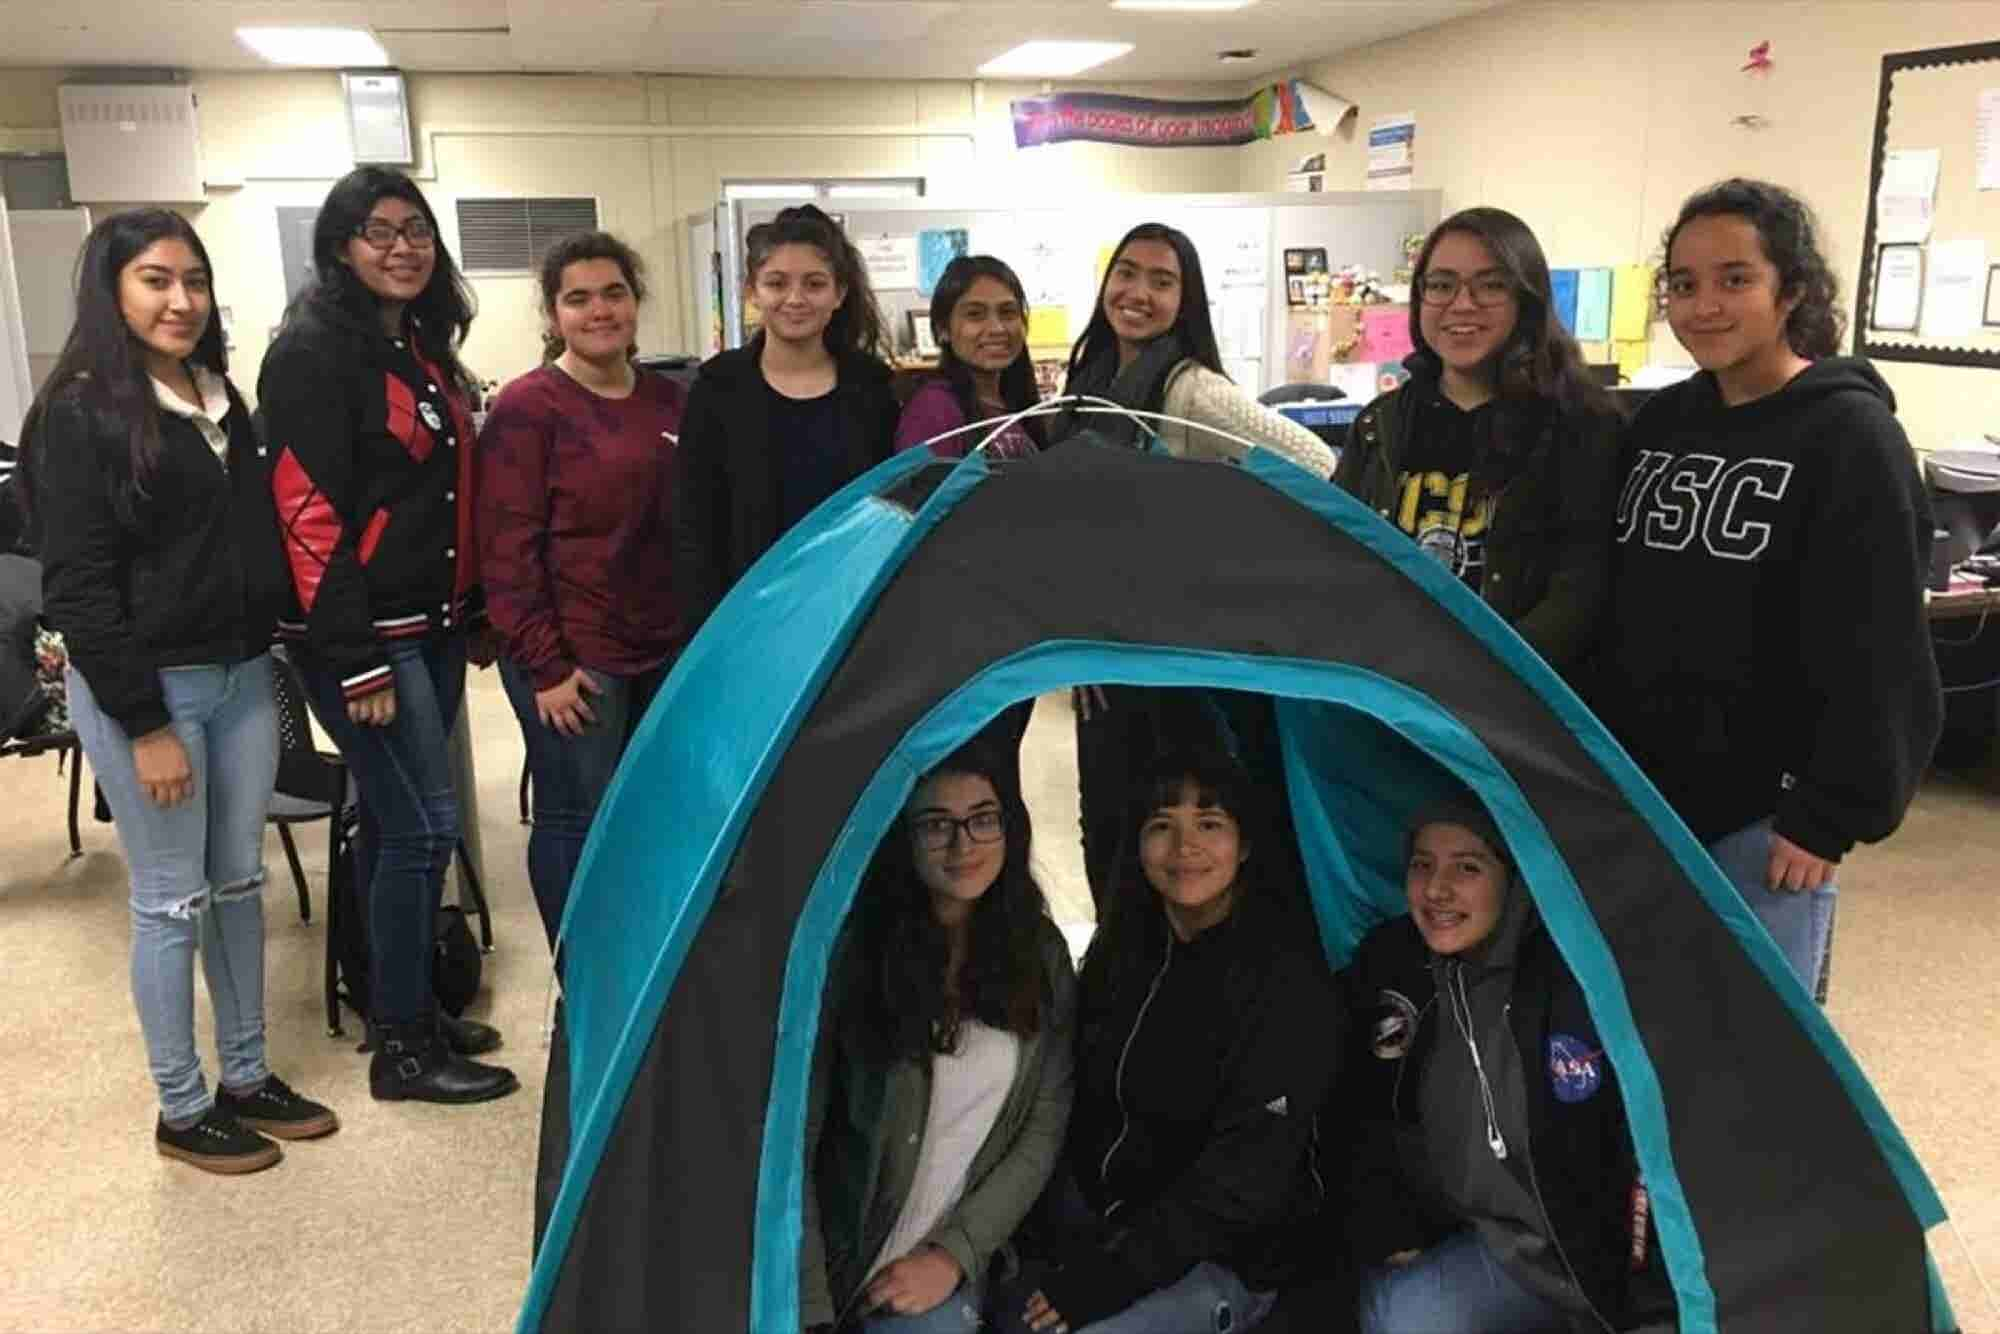 These Inspiring Teen Girls Invented a Solar-Powered Housing Solution for the Homeless -- Now They Are Presenting Their Work at MIT